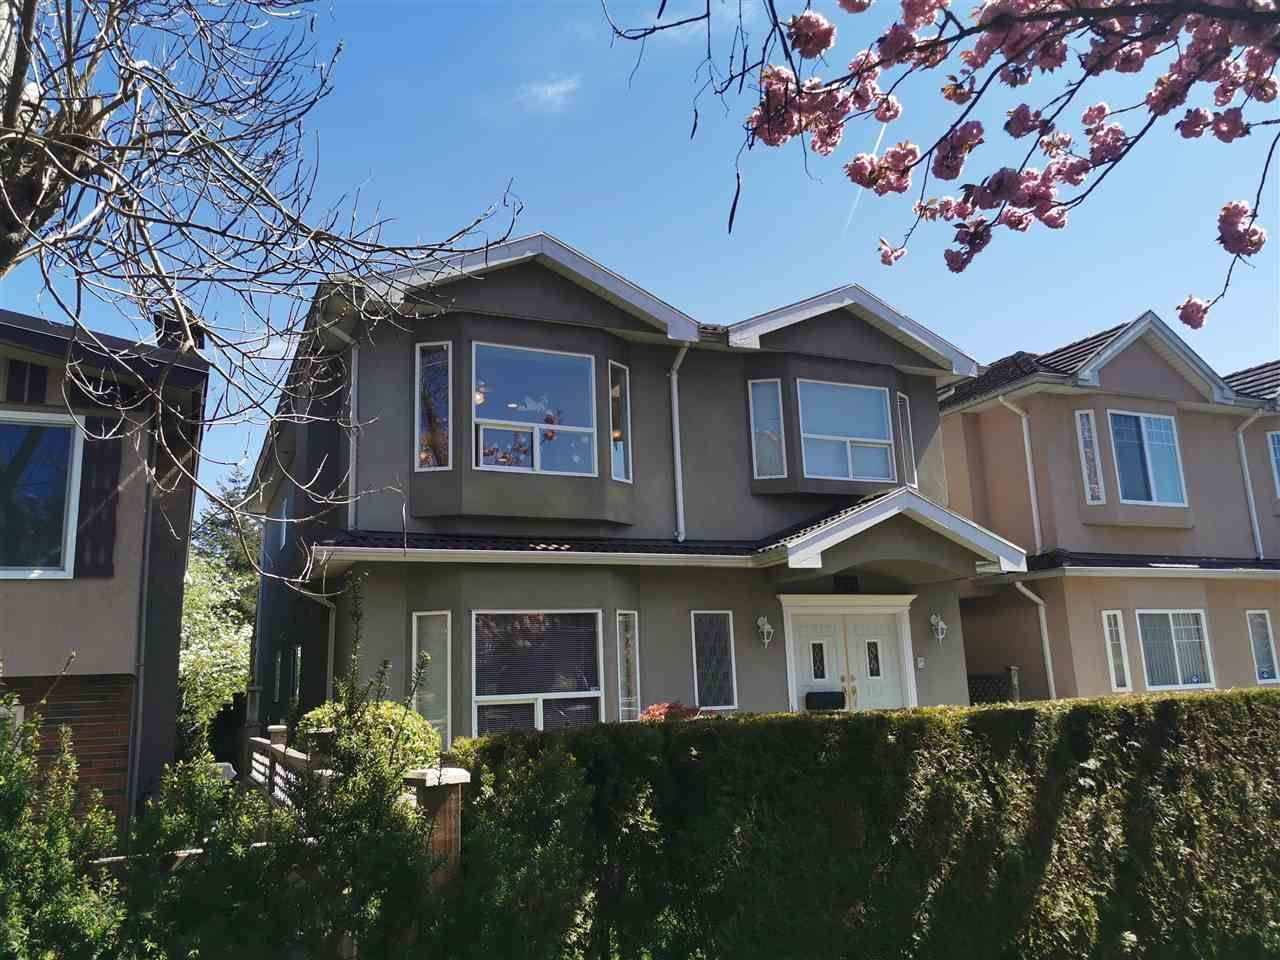 Main Photo: 5774 ARGYLE Street in Vancouver: Killarney VE House for sale (Vancouver East)  : MLS®# R2569588